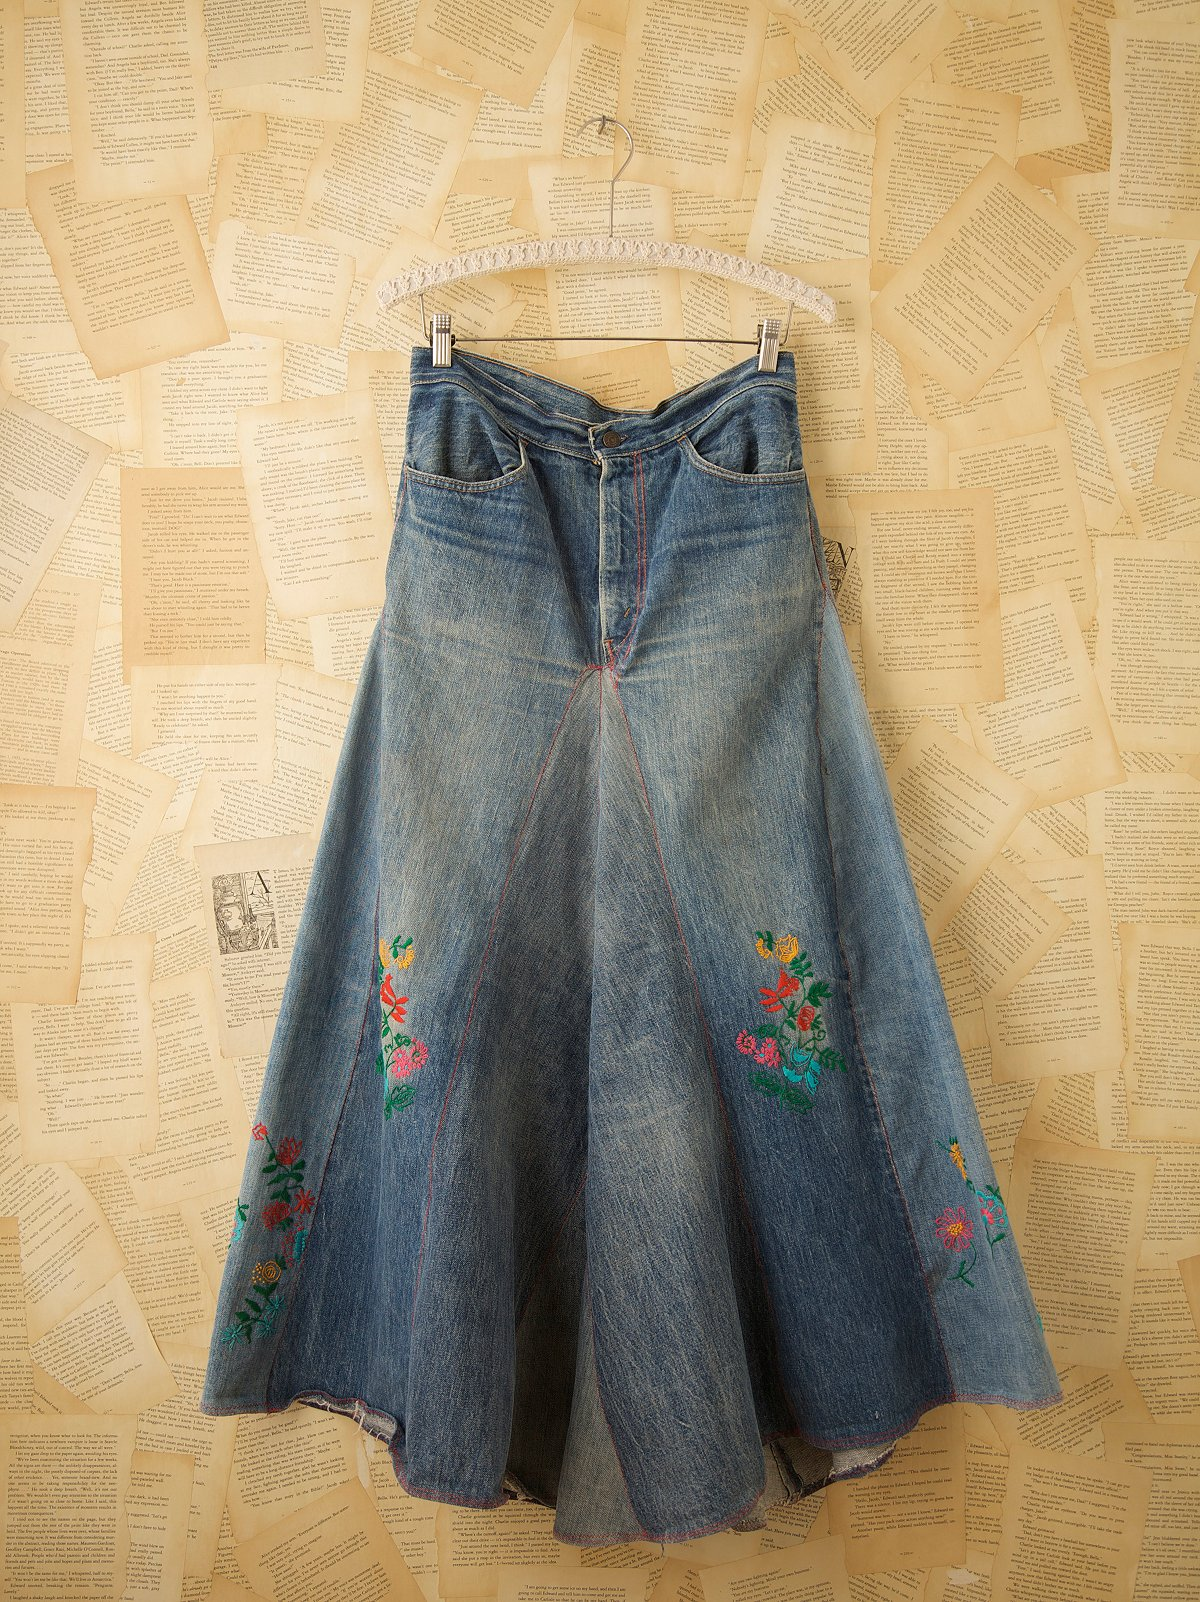 Vintage Embroidered Carol Skirt